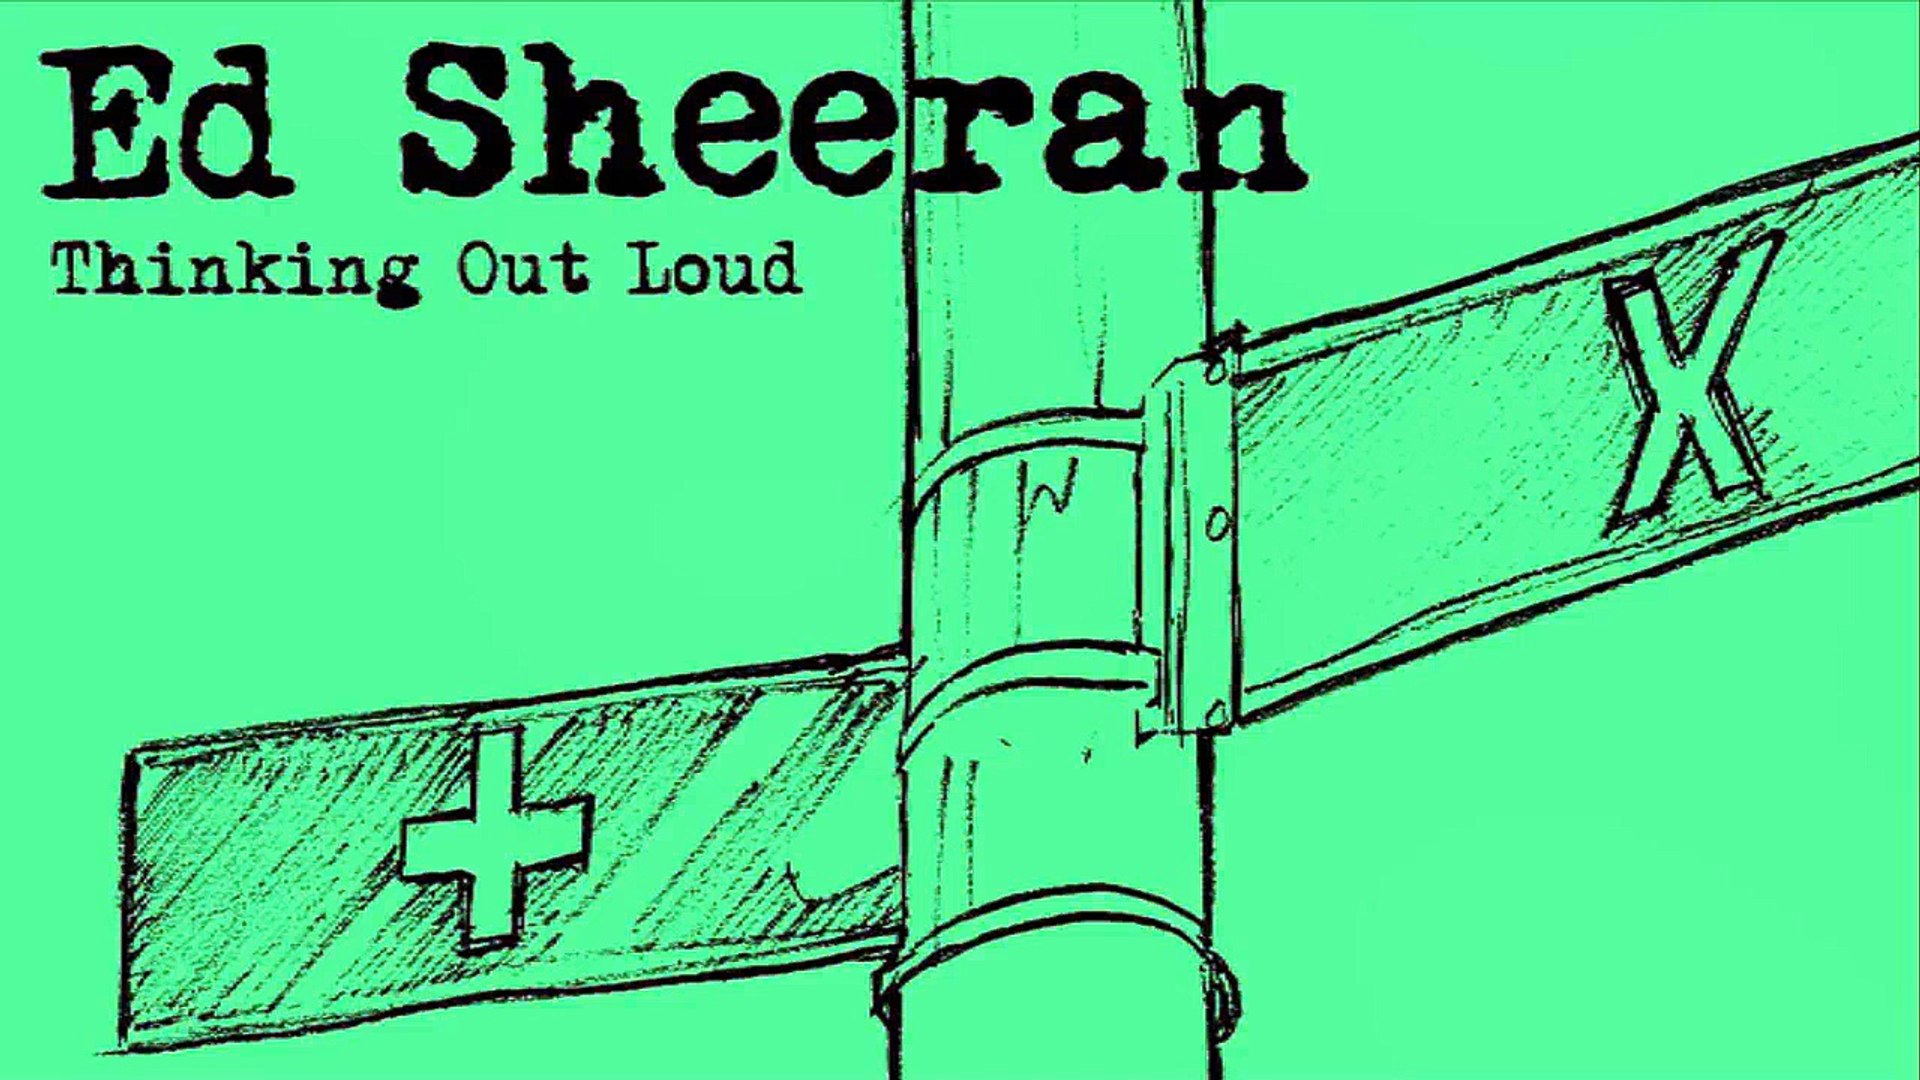 ed sheeran plus album download mp3